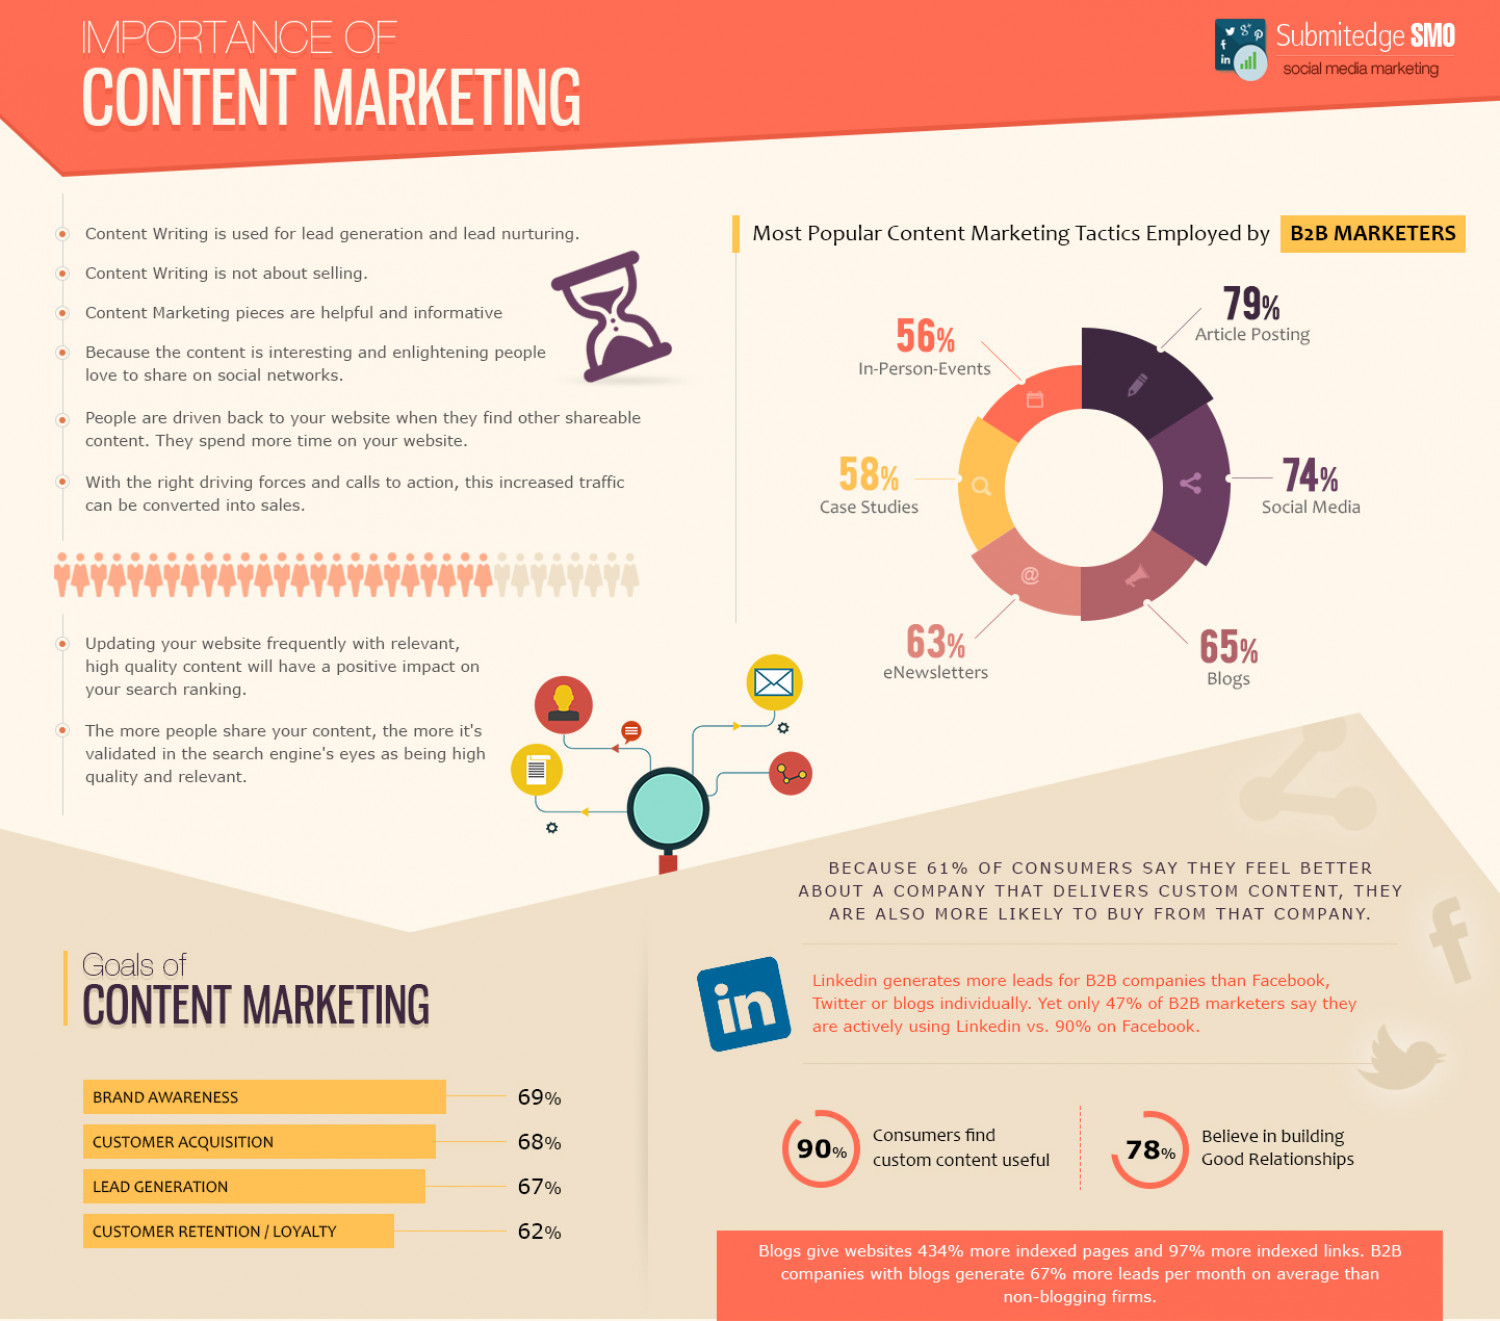 The Importance of Content Marketing Infographic